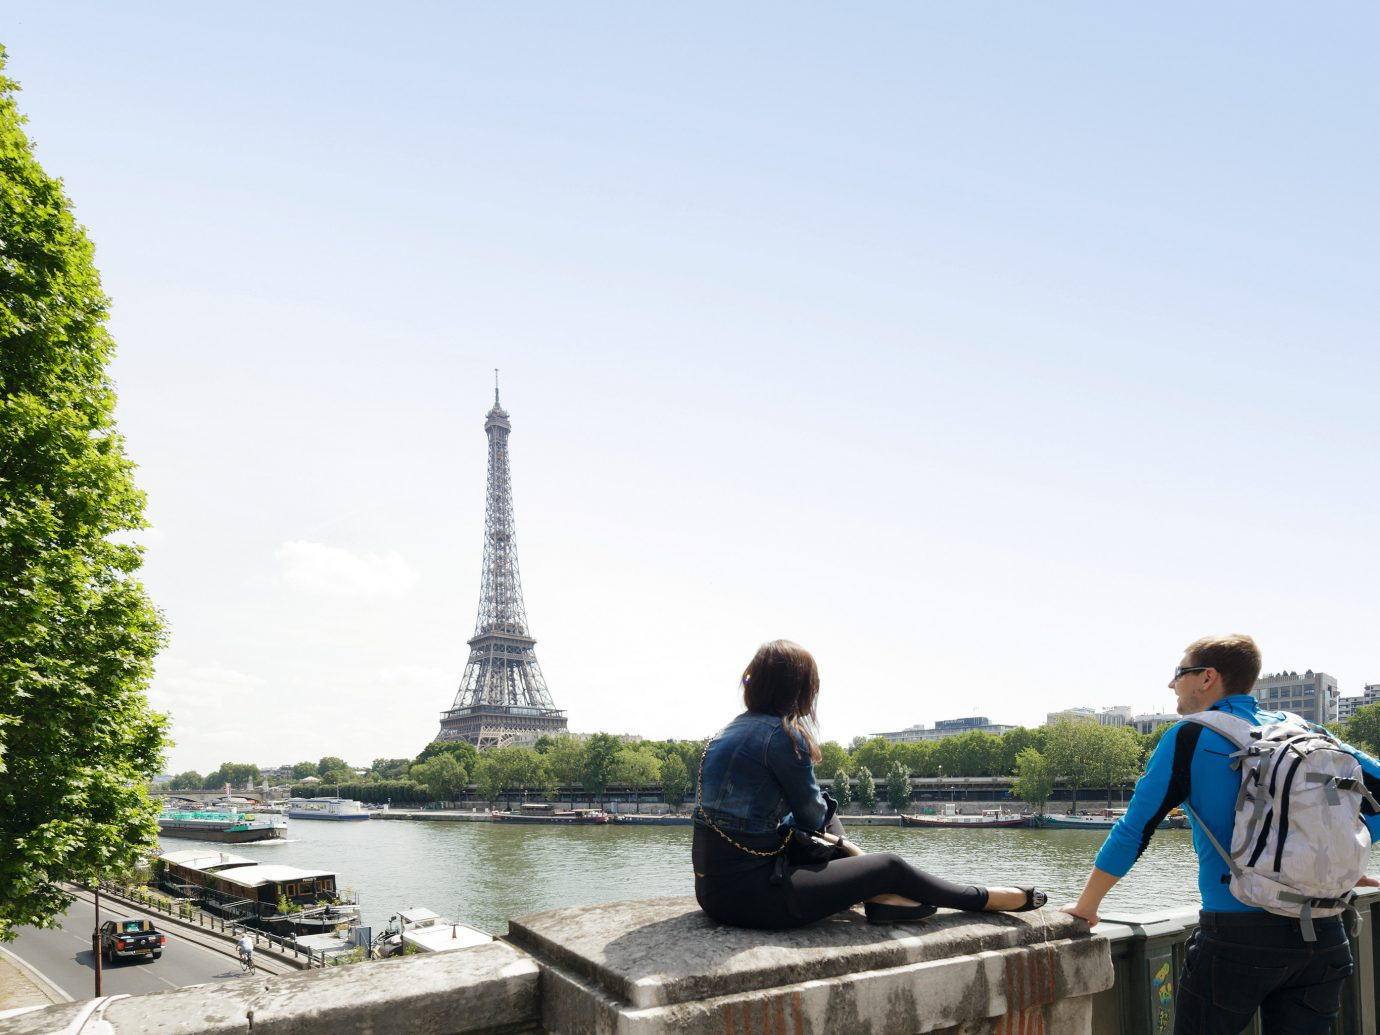 Romance Trip Ideas outdoor sky water person landmark monument tourism tours memorial statue waterway people tower Boat